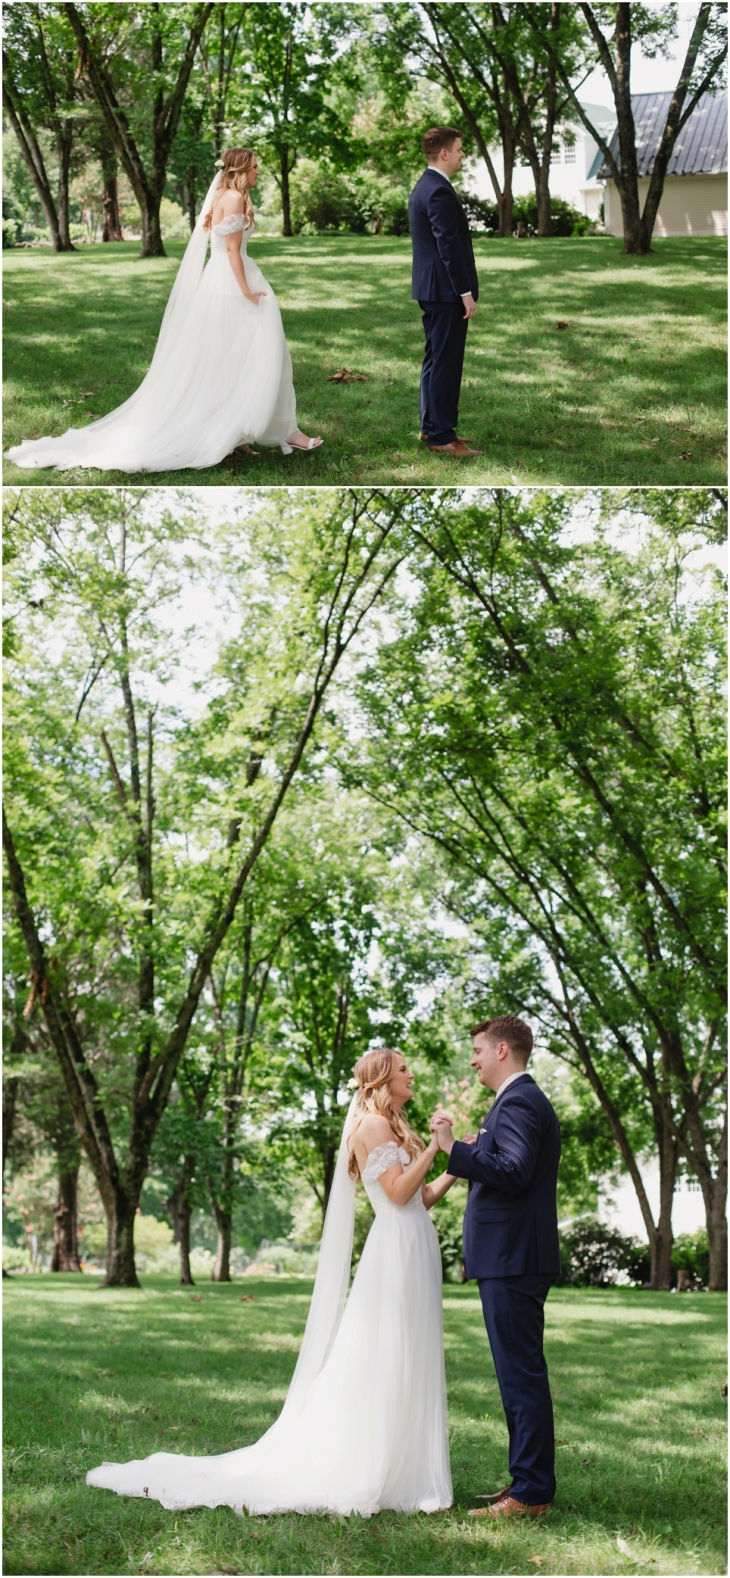 Wedding Pictures at Marblegate Farm